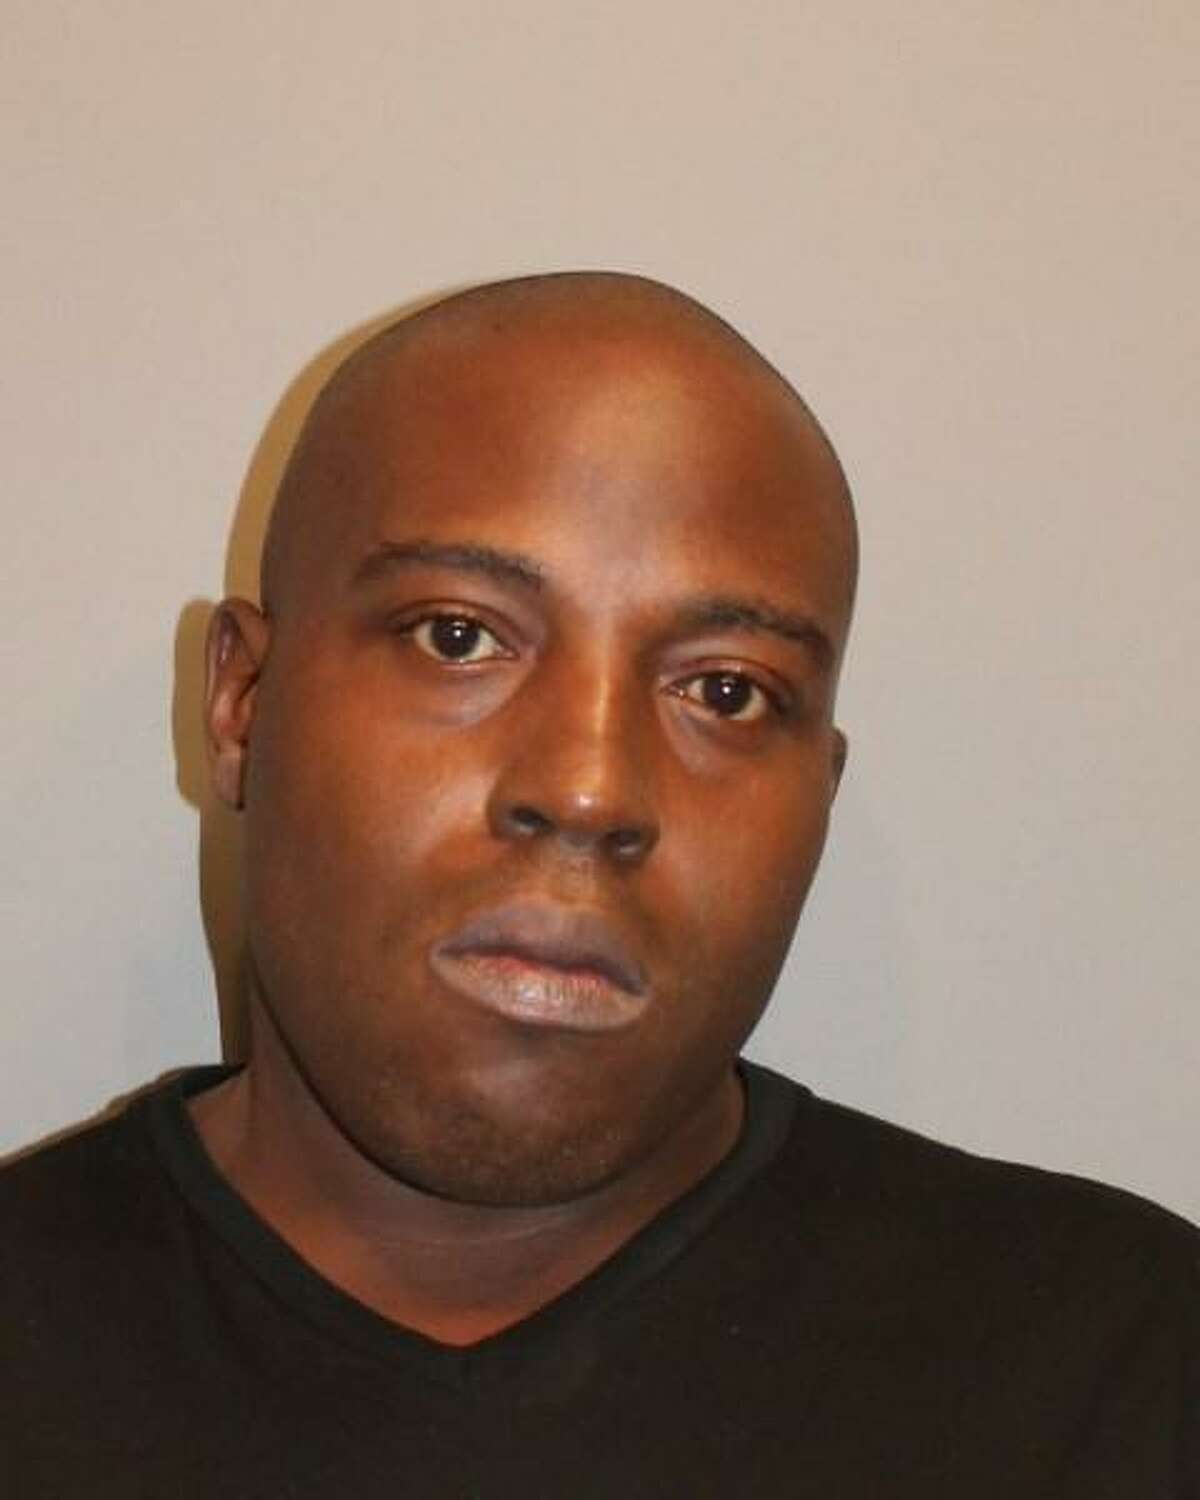 Malcolm Williams, 39, of Windsor Place, Norwalk